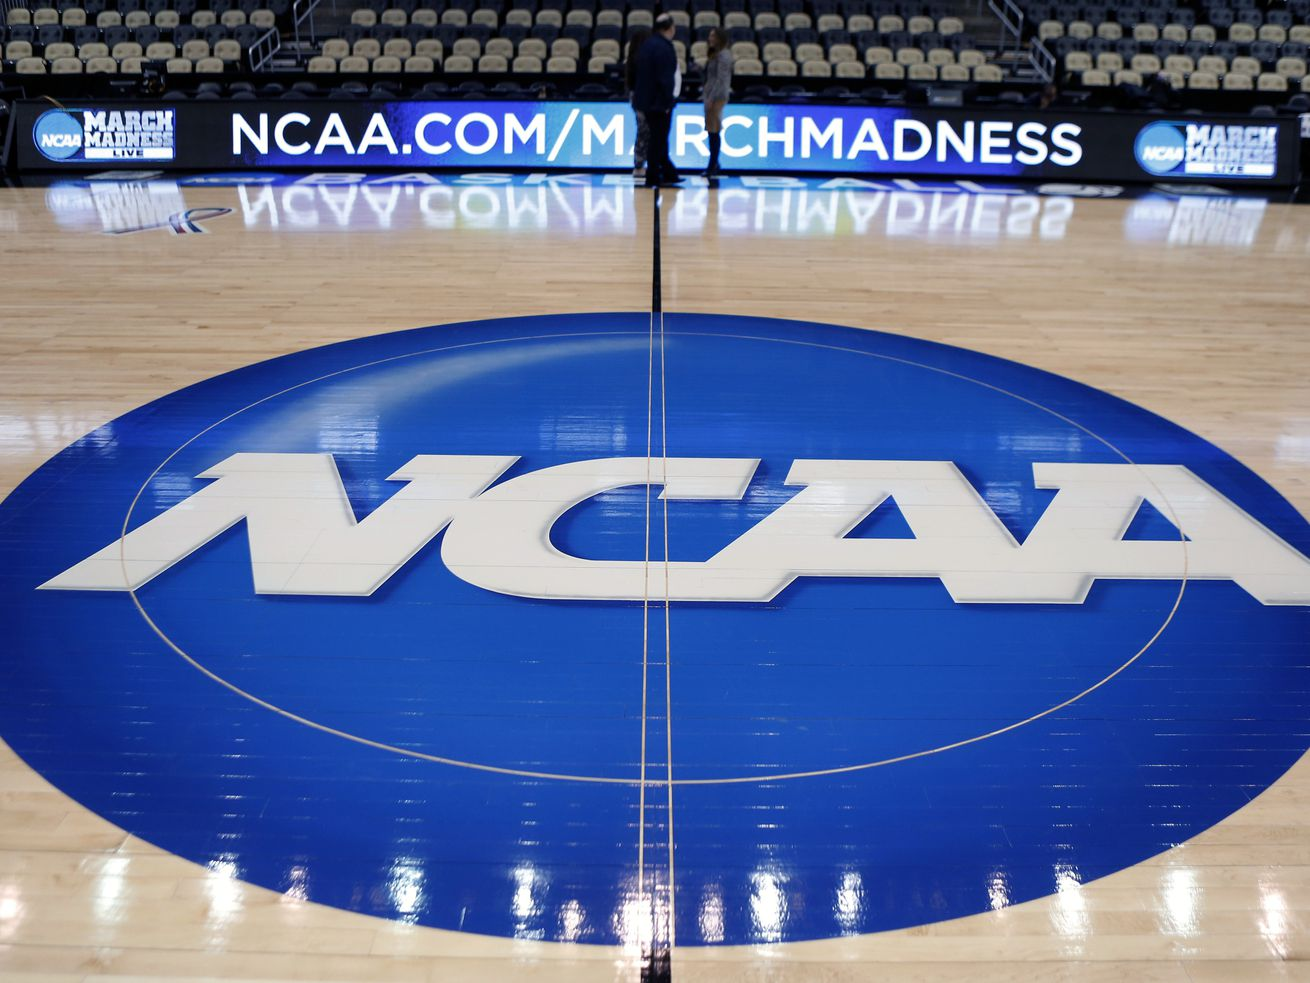 The NCAA has approved new rules that will allow athletes to transfer without sitting out a season.